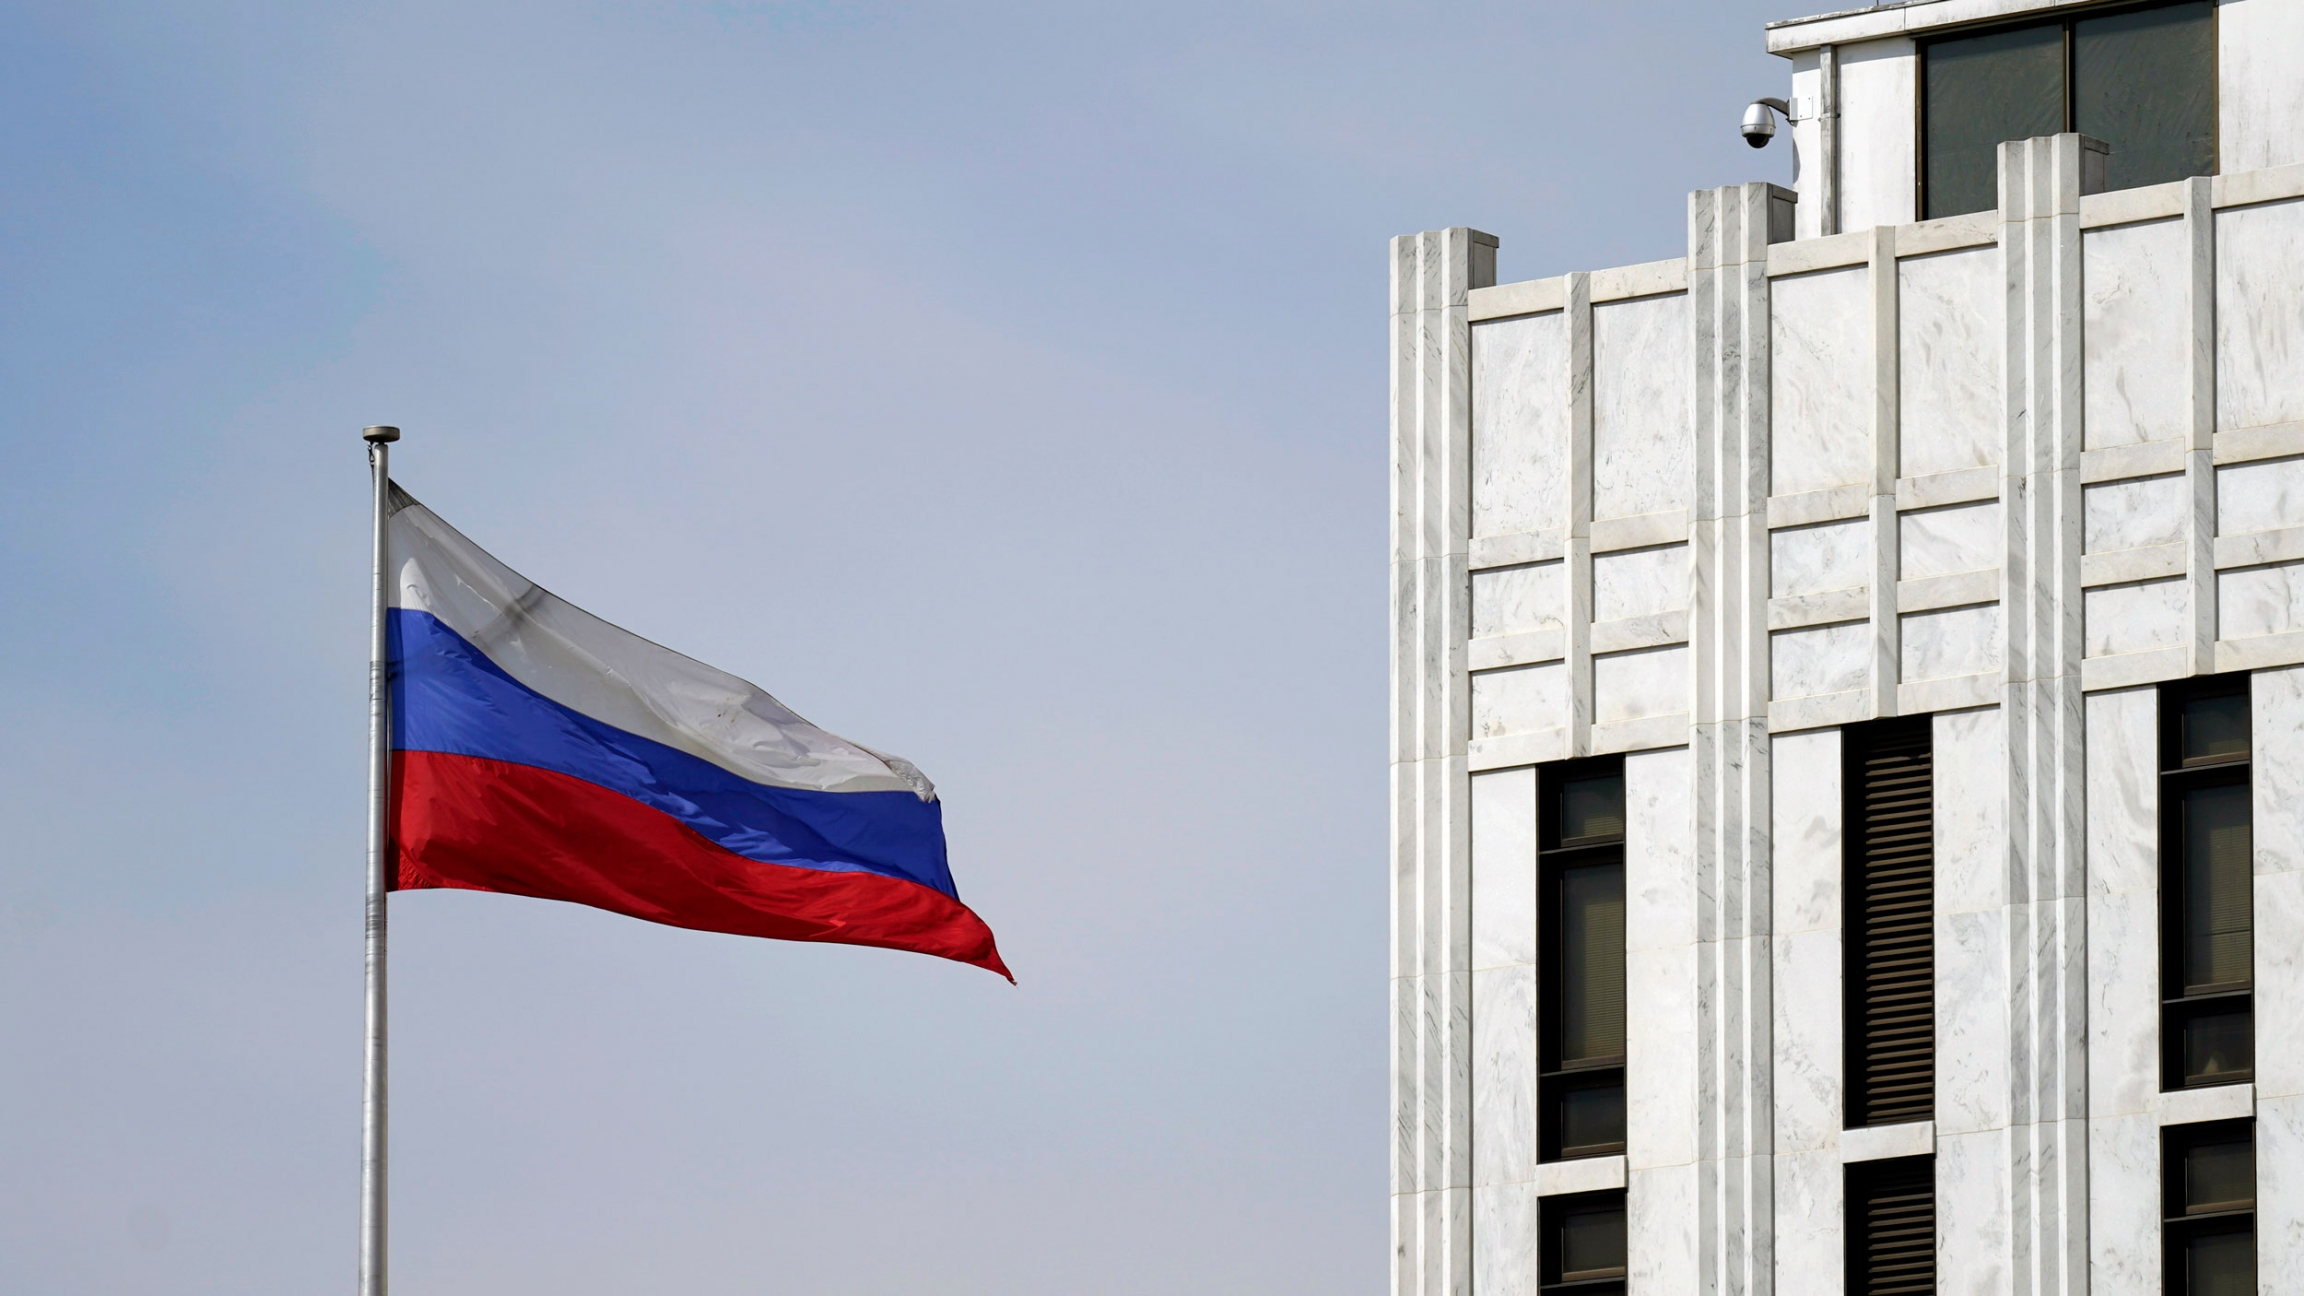 The white, blue and red horizontal stripes of the Russian flag is shown flying in front of the country's embassy building in Washington, DC.